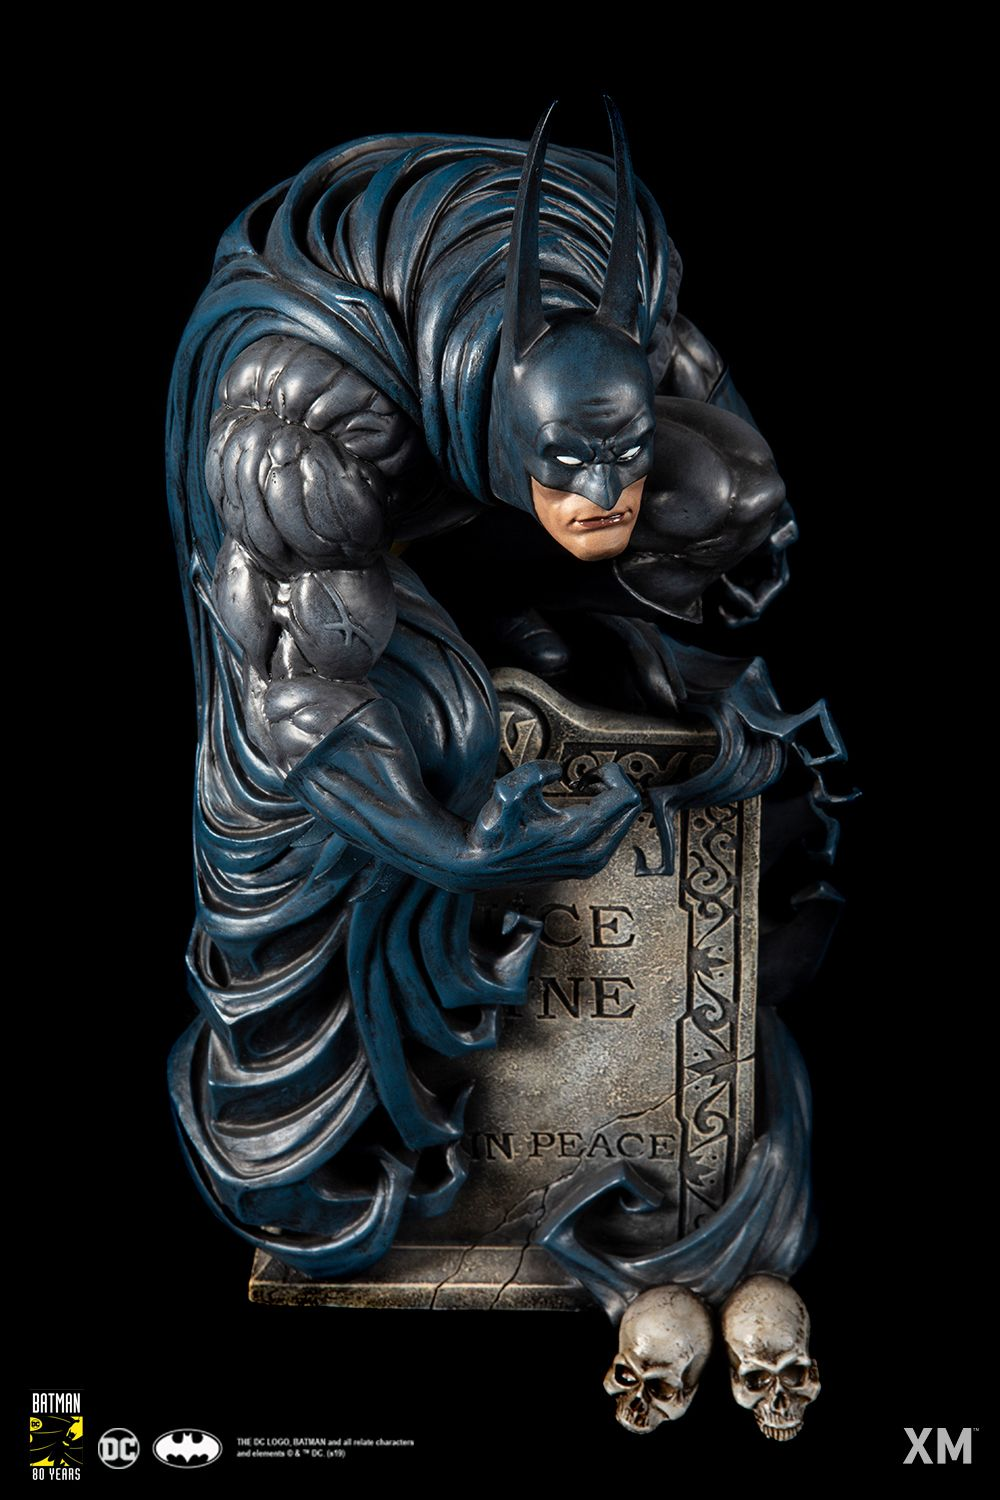 Xm Batman Bloodstorm 1 6 Statue Goes Online Today 25 09 2018 At